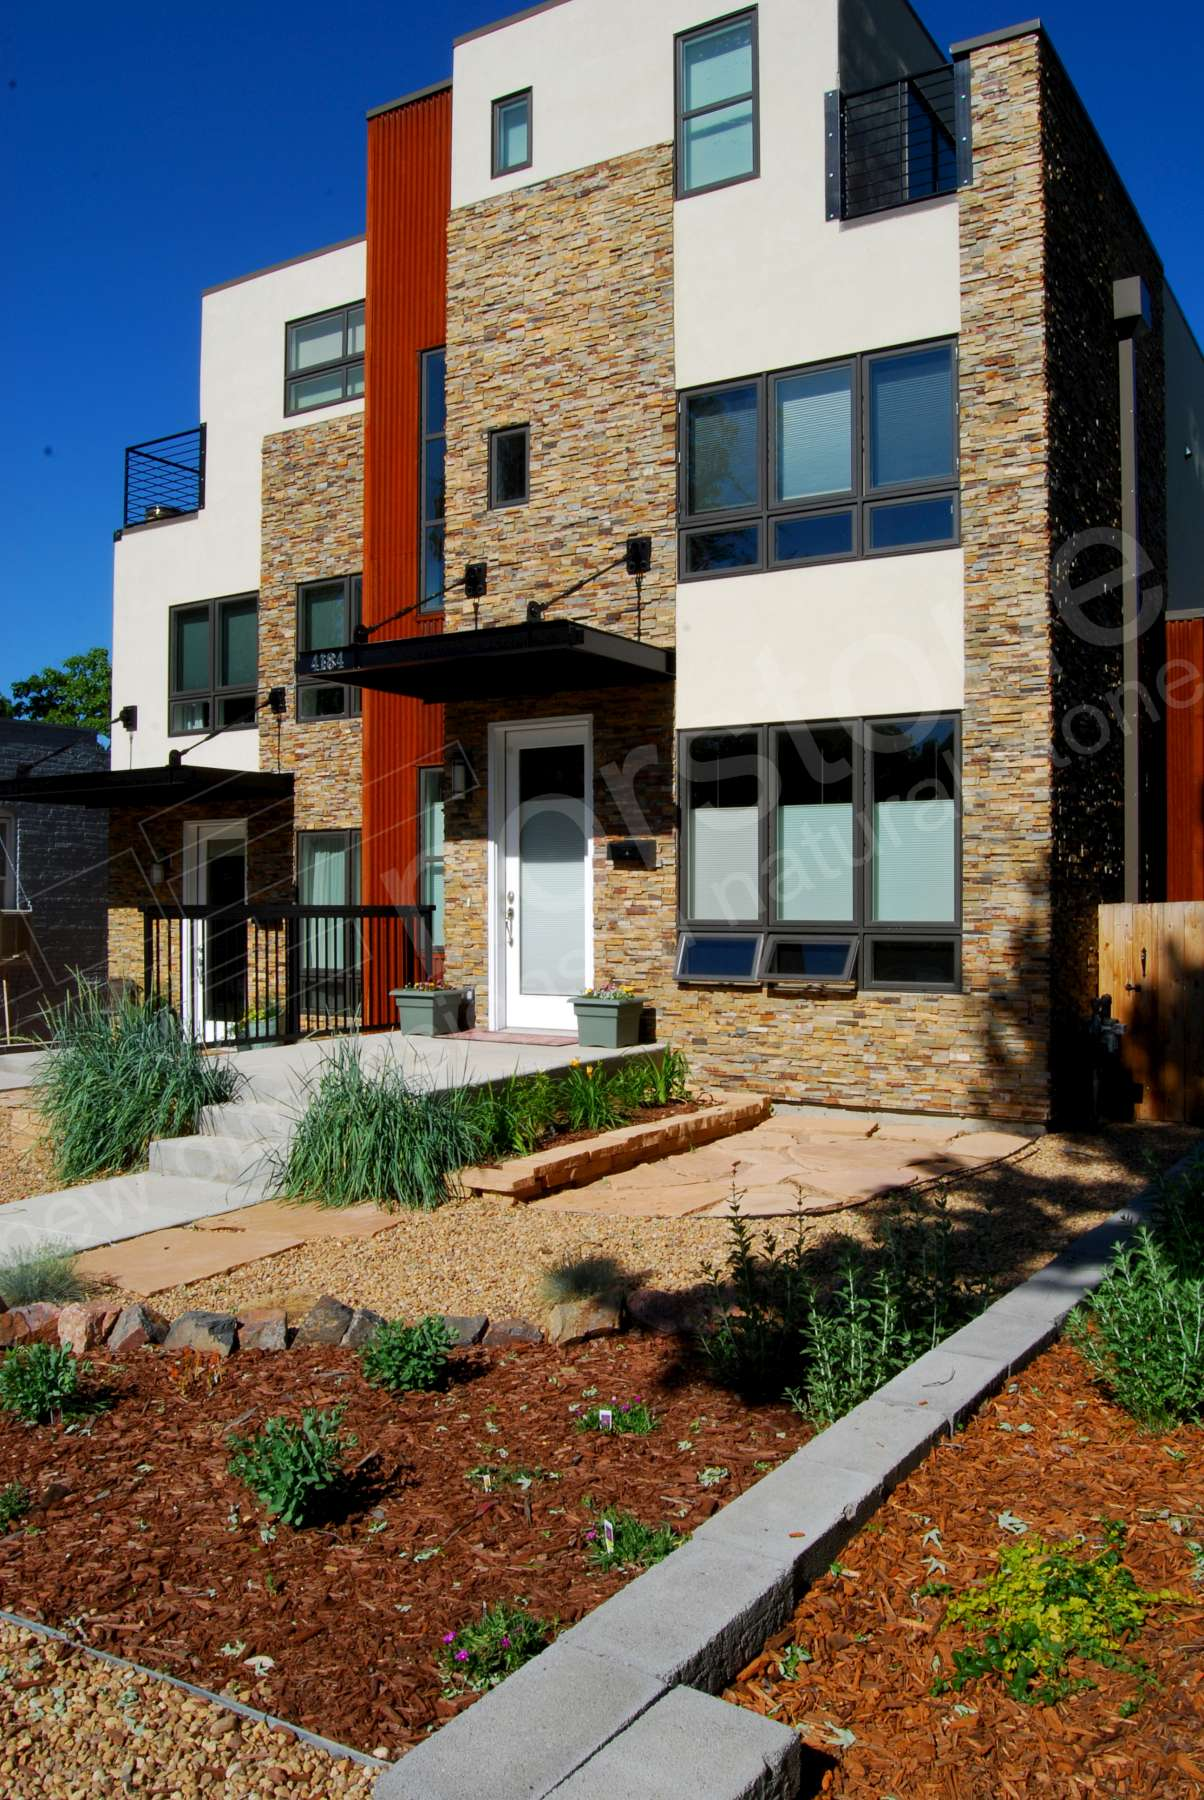 Norstone Ochre Stacked Stone Rock Panels on entryway and front facade of duplex in Colorado